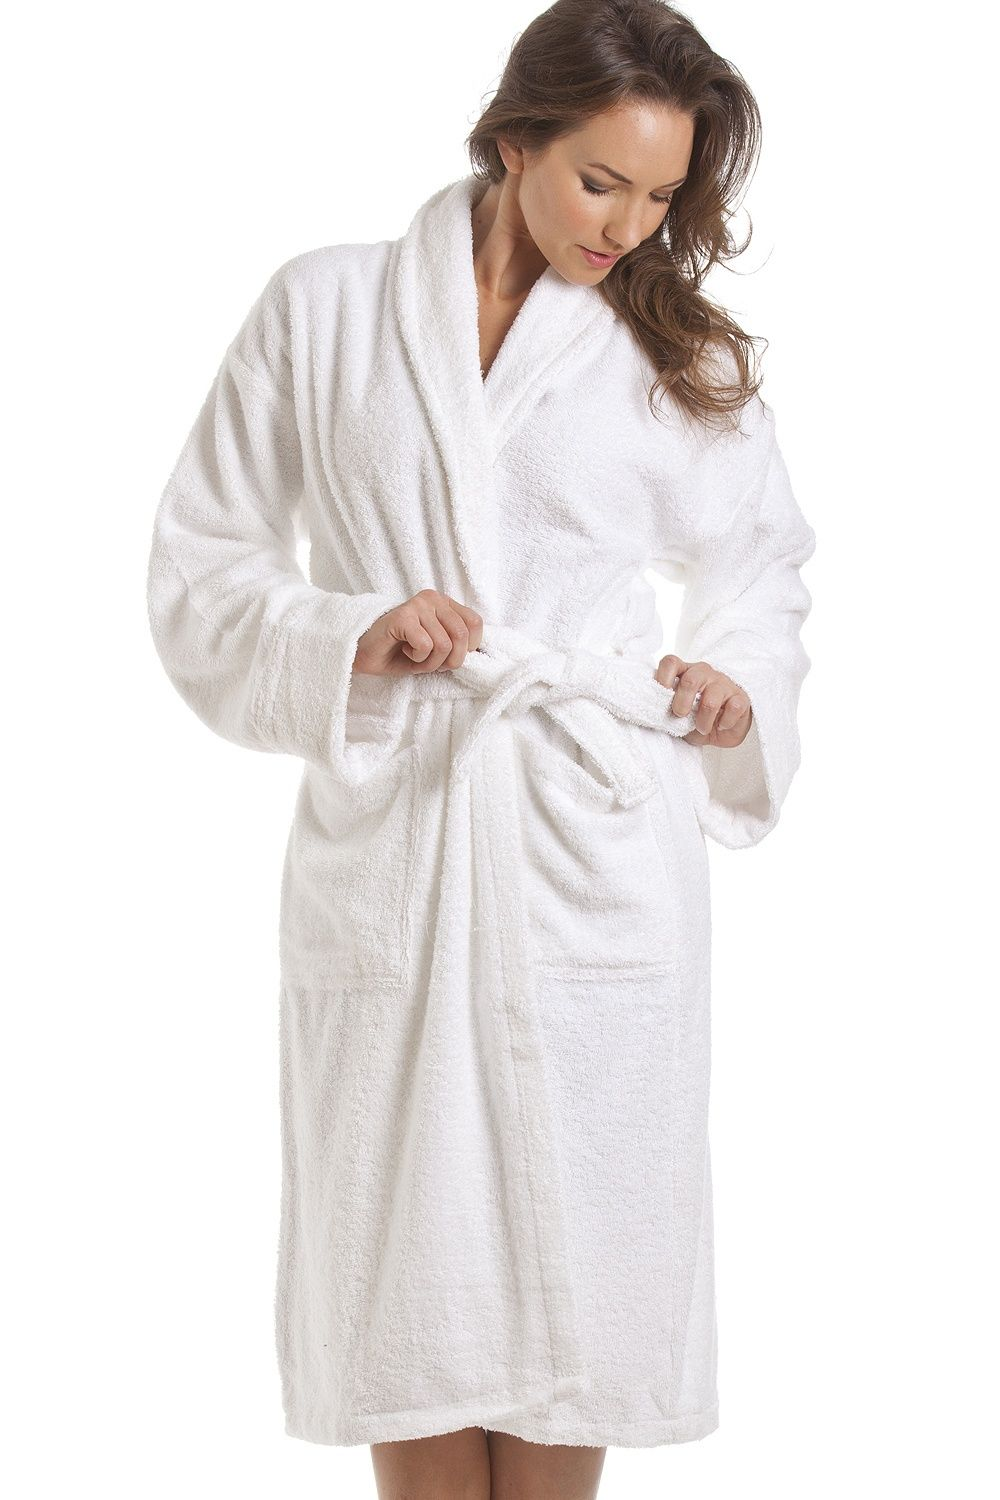 womens-luxury-white-100-cotton-towelling-bath-robe-p1945-10076_image ...